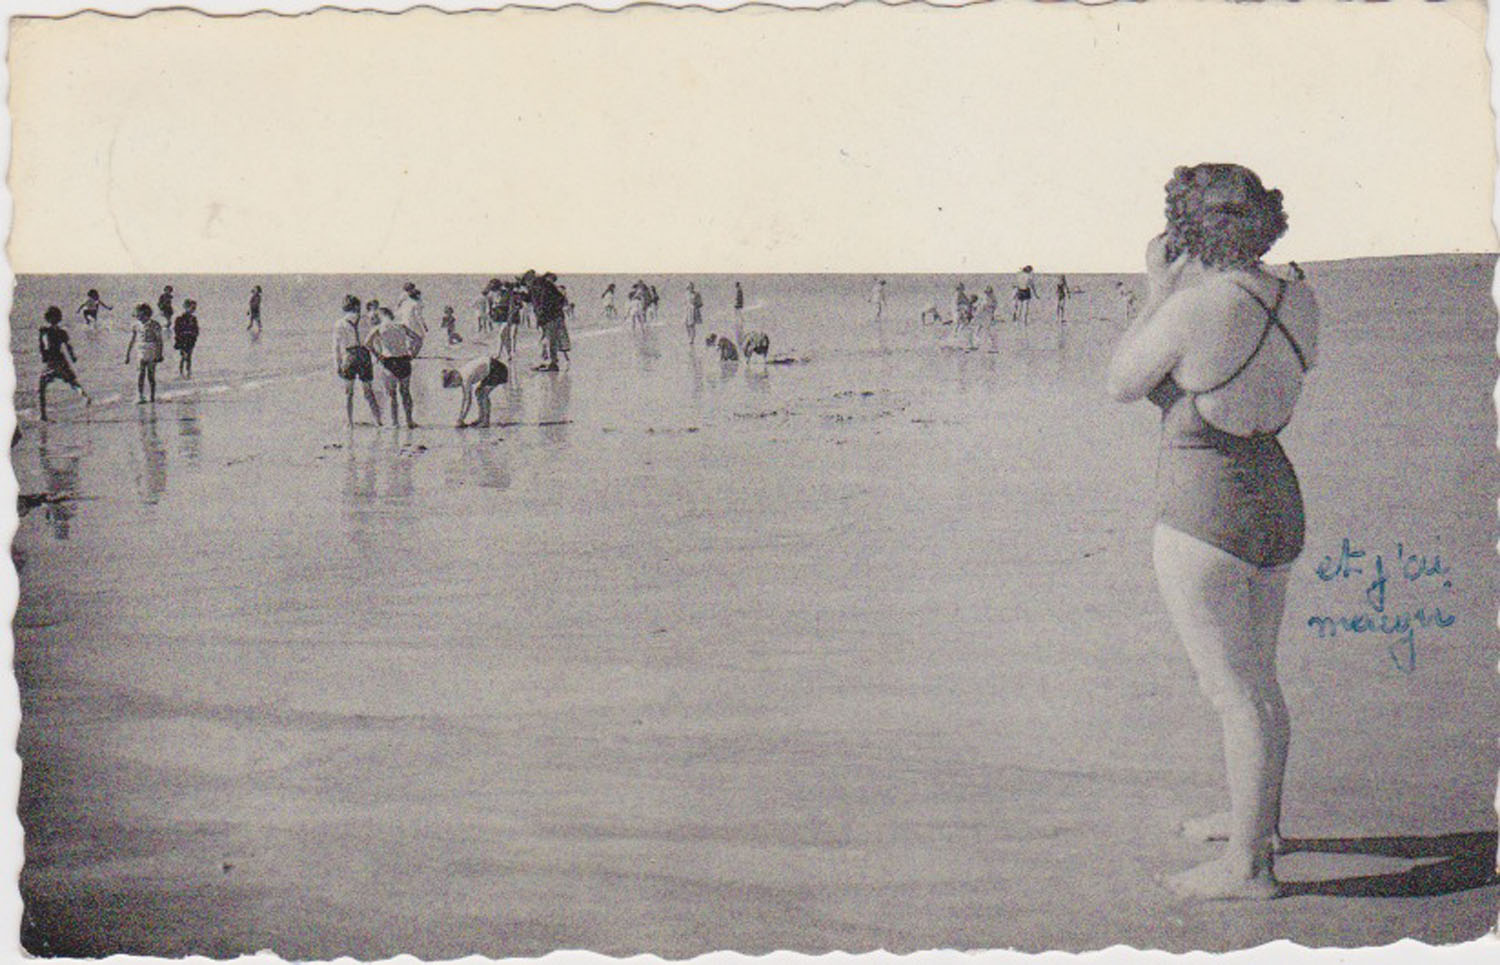 1953 St Martin Plage © collection Jean Claude Ferret